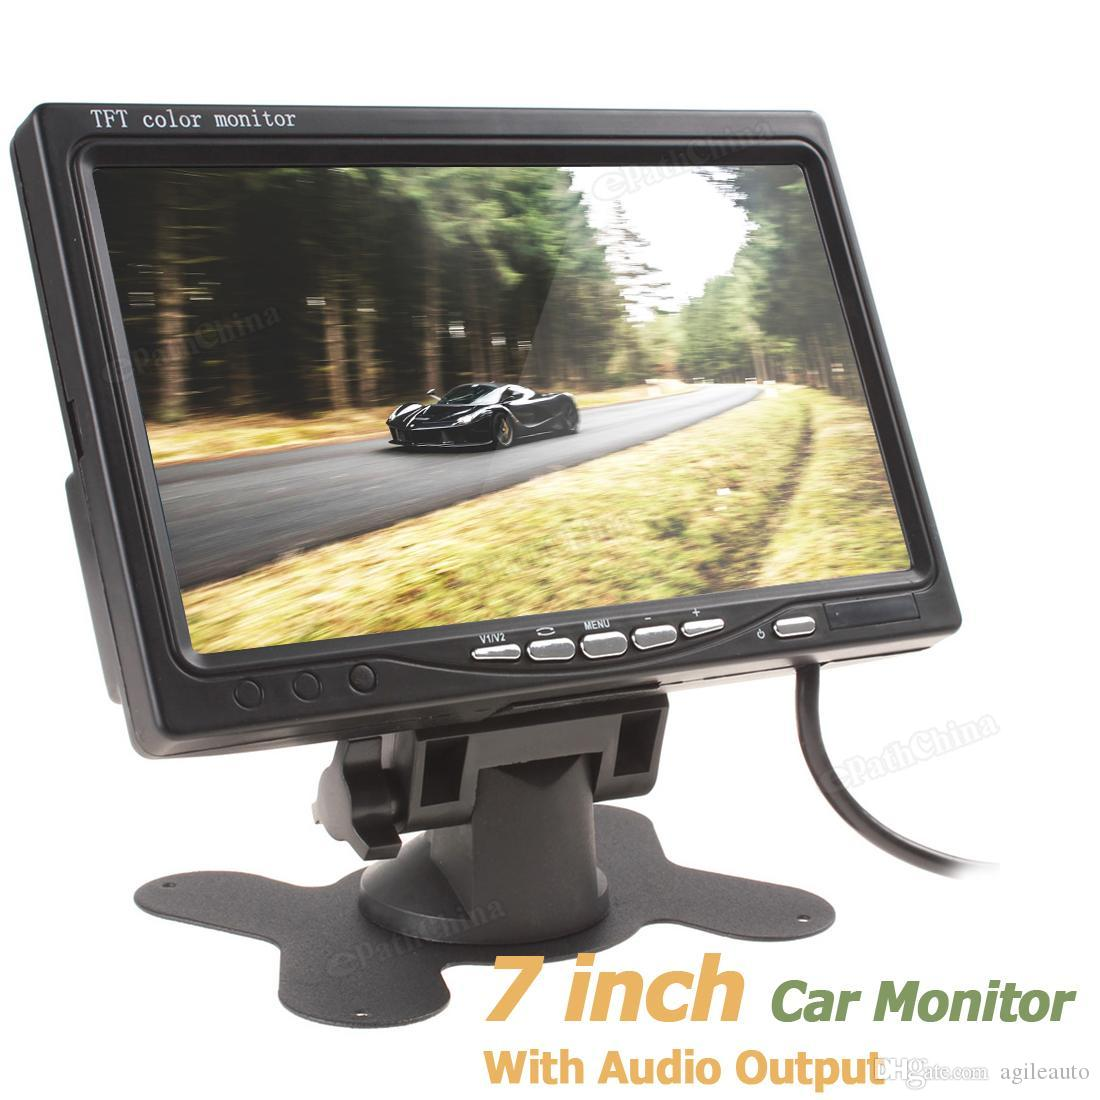 800 x 480 7 Inch Color TFT LCD Screen Car Rear View Monitor with Audio Output CMO_397